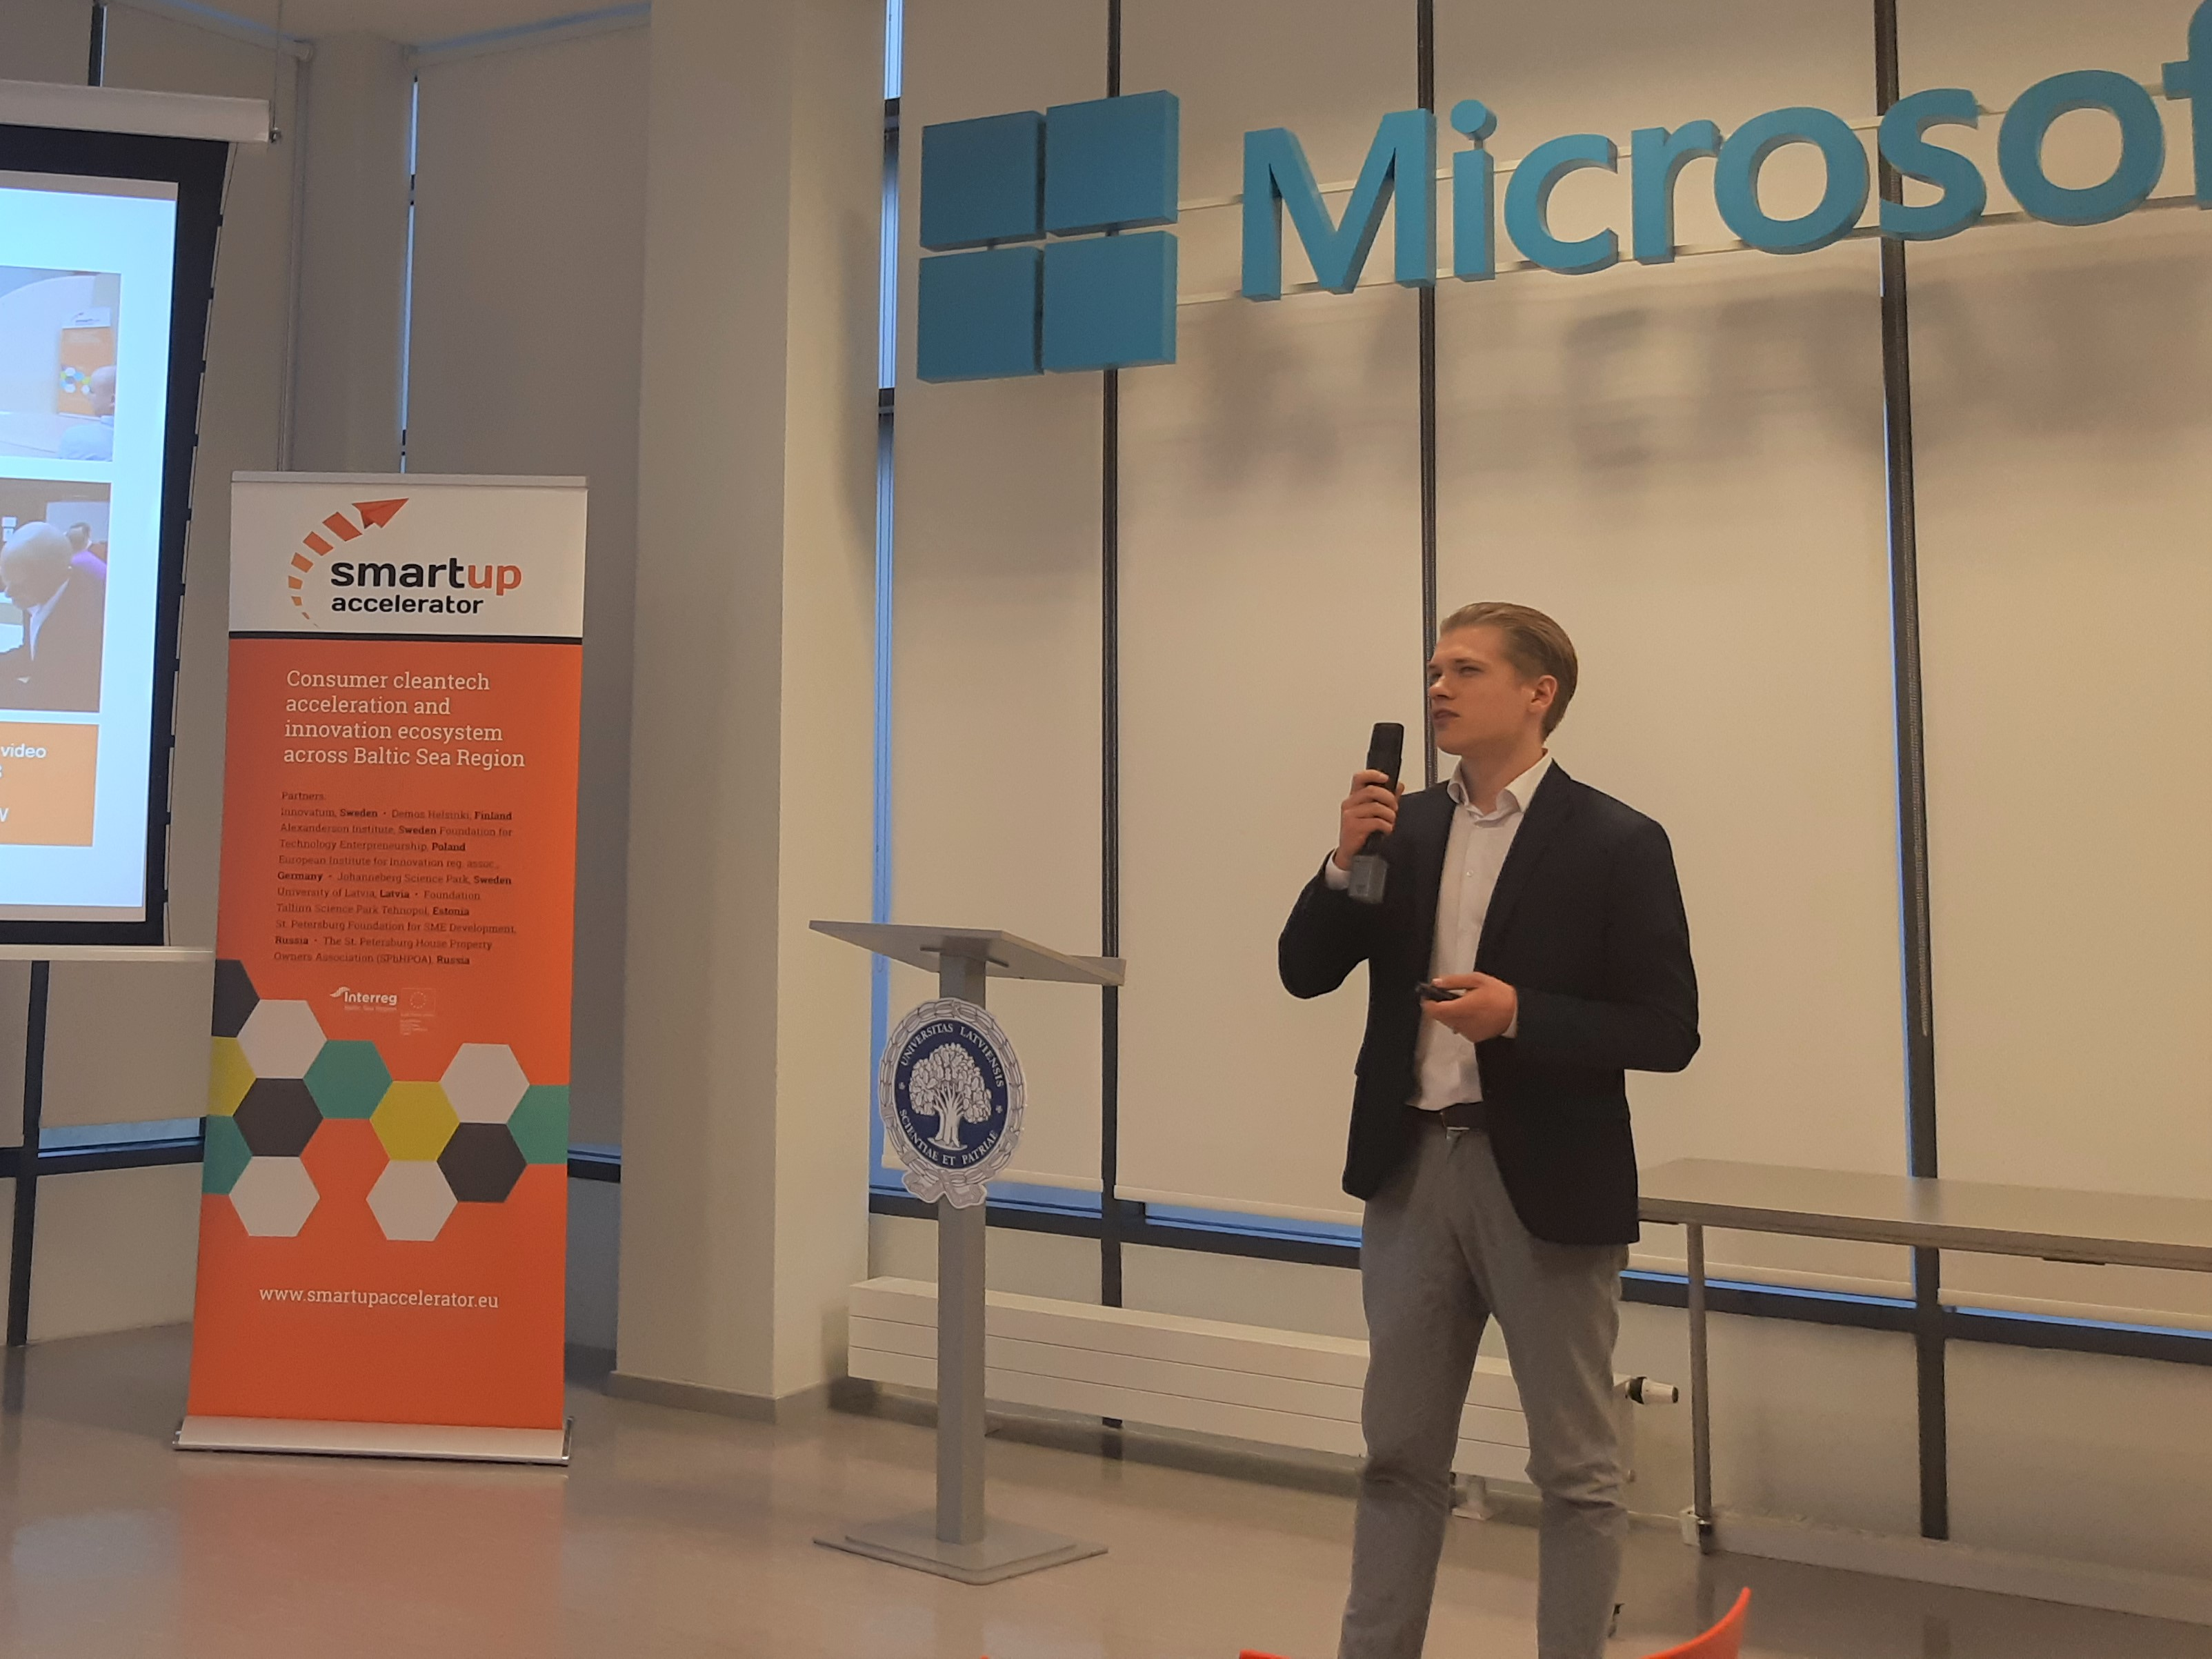 Karlis Kivlenieks shares experiences from last year's SmartUp bootcamp in Gothenburg. In 2019, the bootcamp for smart mobility solutions will be held in Riga!